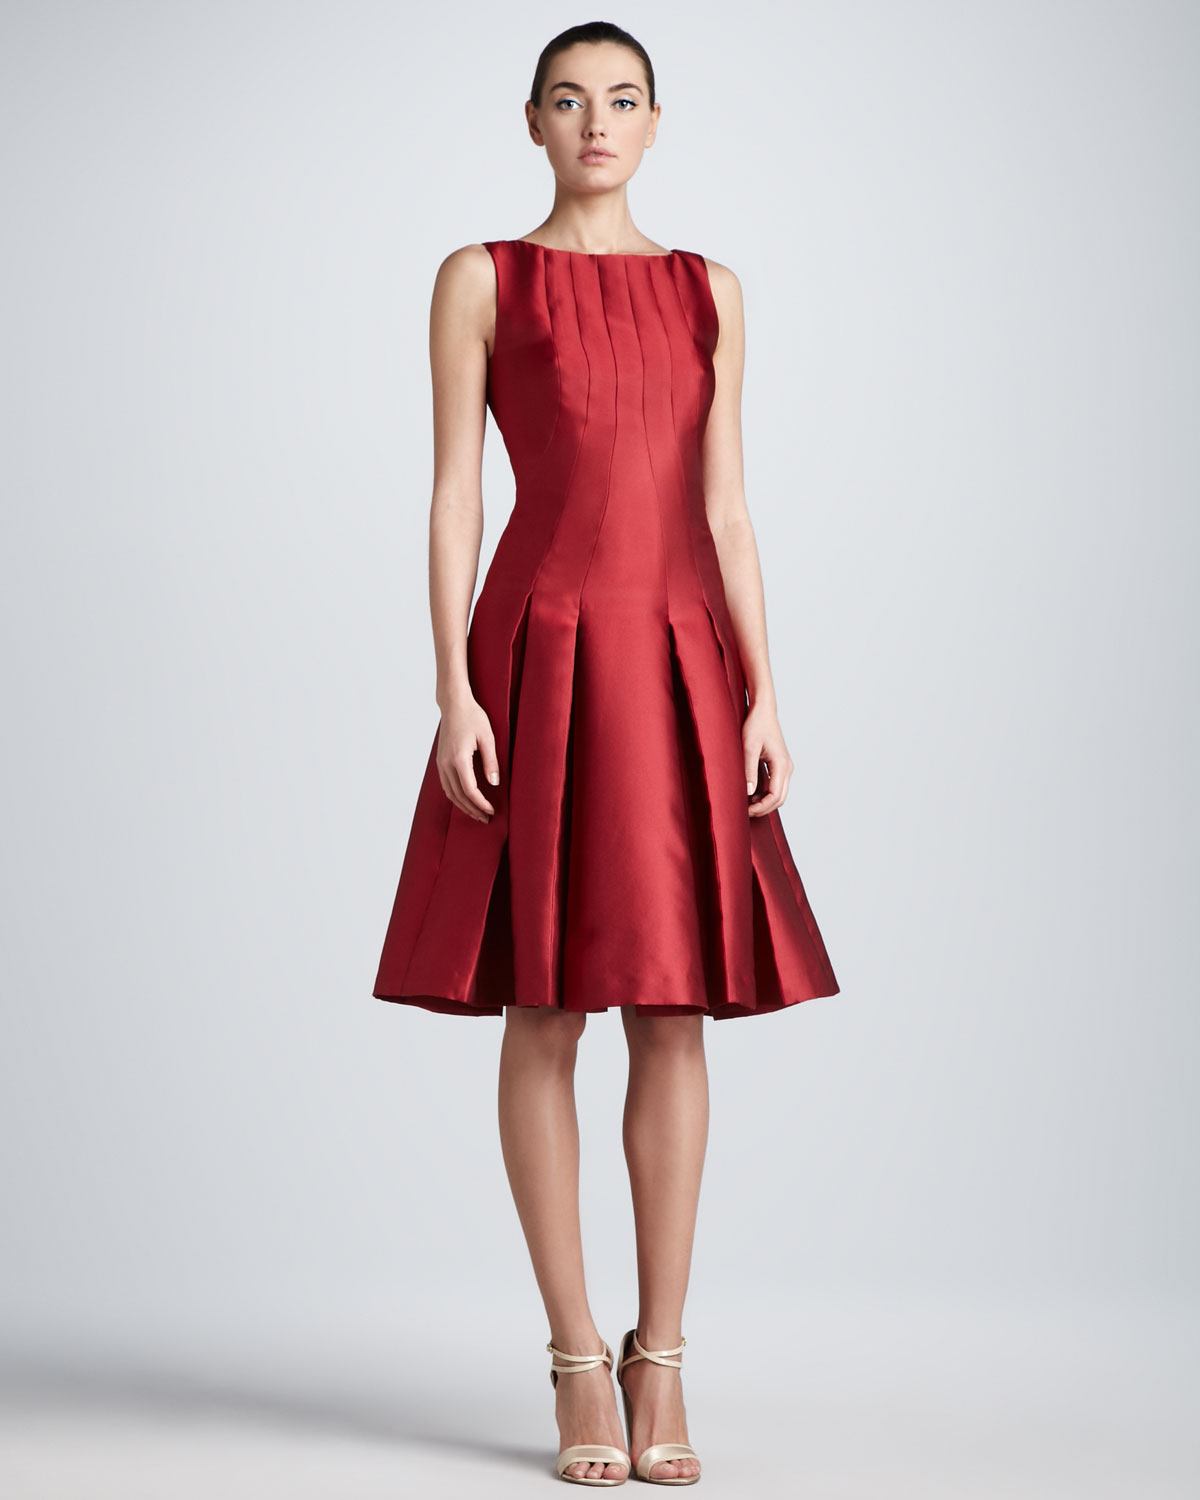 Lyst - Carolina Herrera Dropwaist Duchess Cocktail Dress in Red